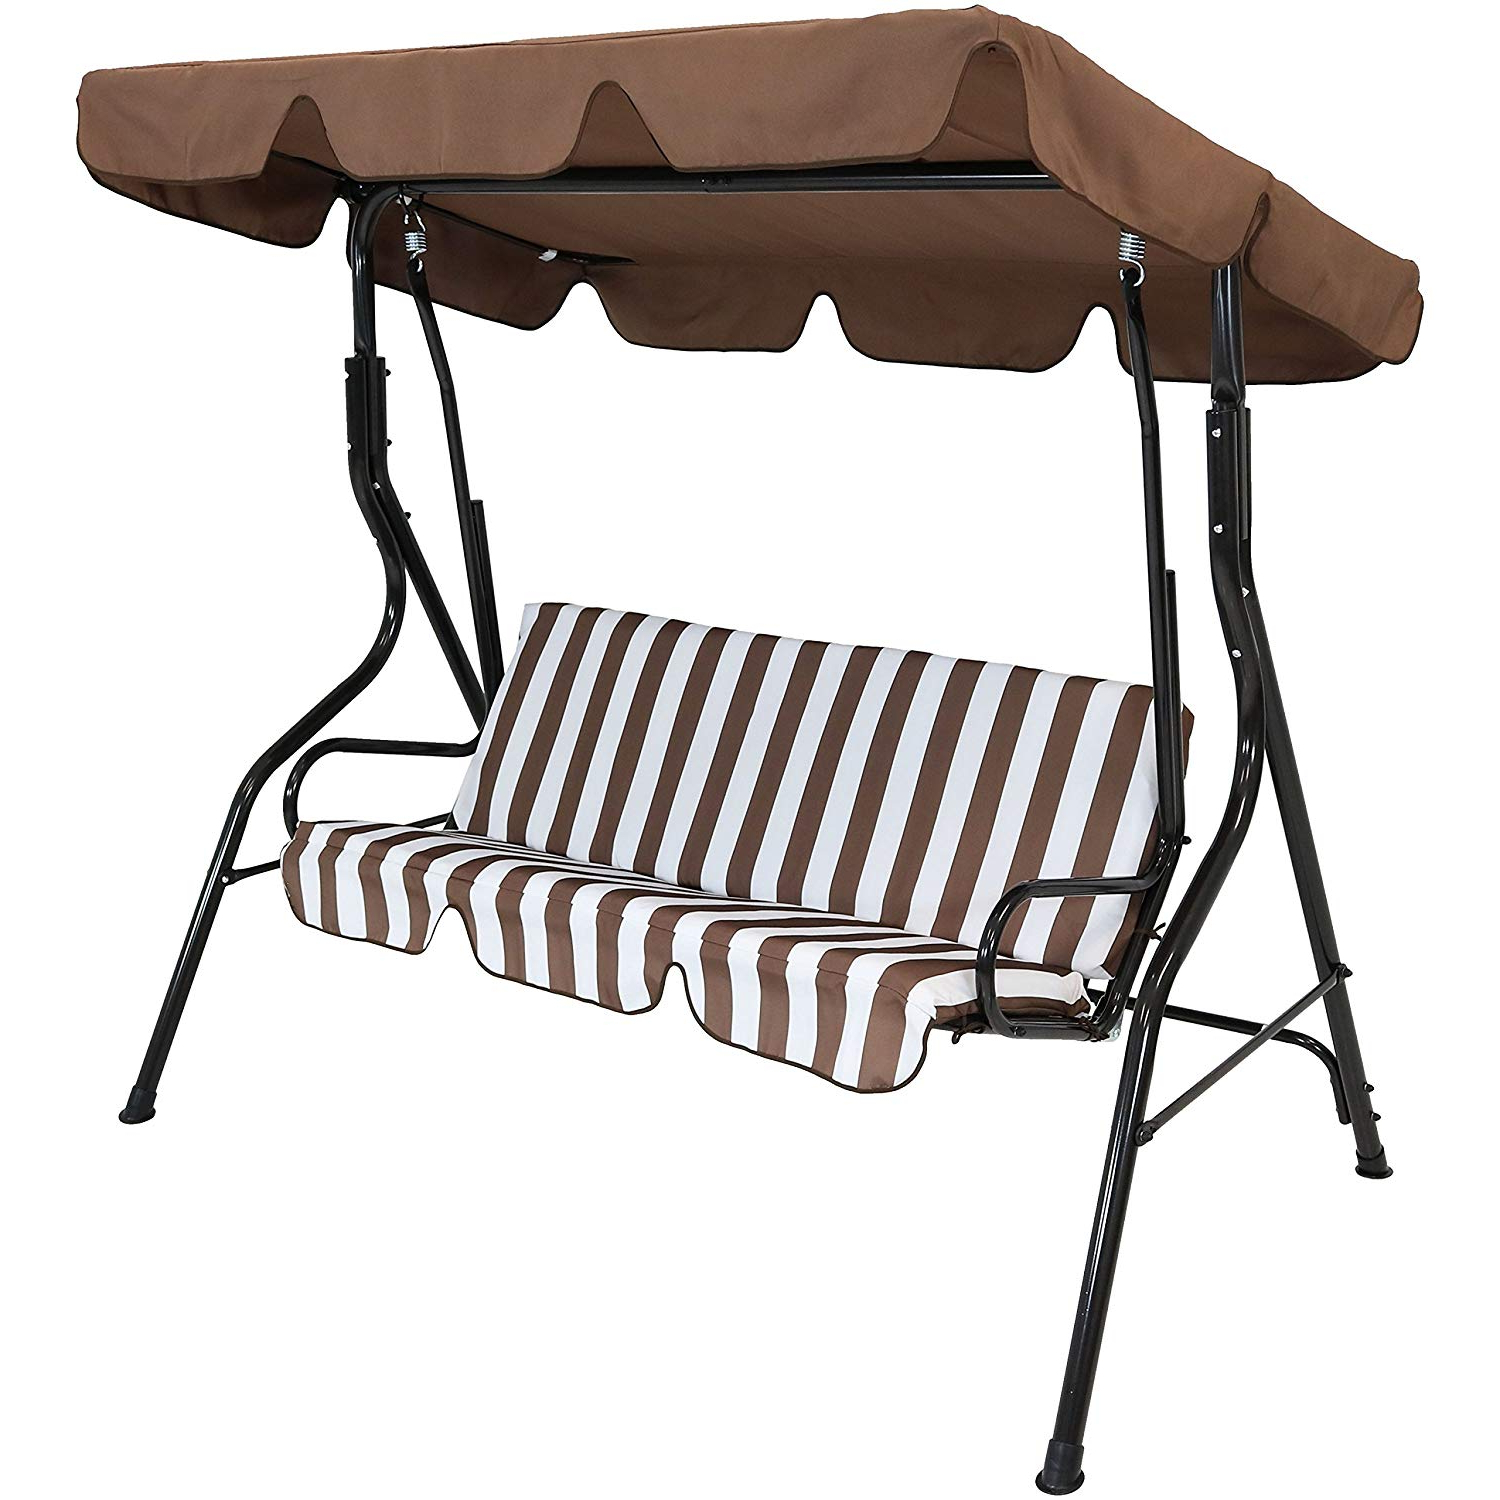 Porch Swings With Canopy Regarding Preferred Sunnydaze Outdoor Porch Swing With Adjustable Canopy And Durable Steel Frame, 2 Person Patio Seater, Brown Striped Seat Cushions (View 26 of 30)